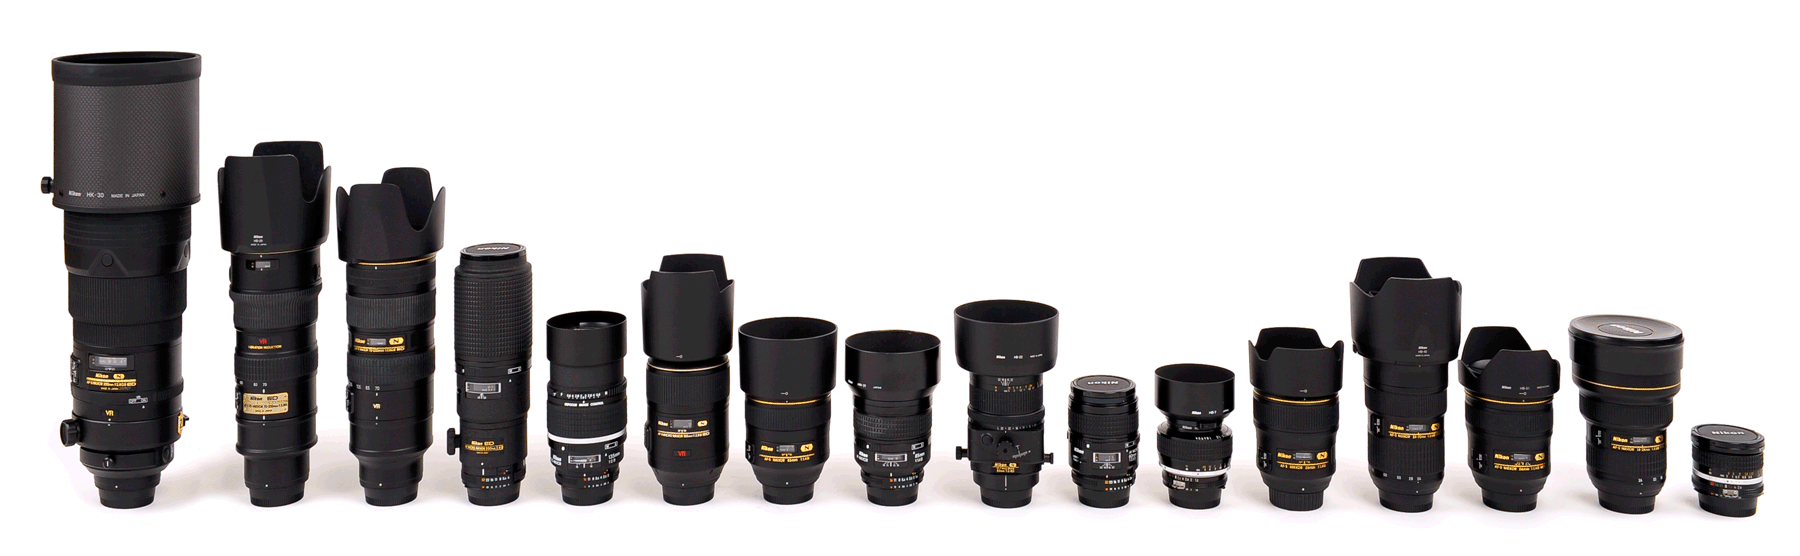 Guest post: sharpness comparison between 16 Nikon lenses